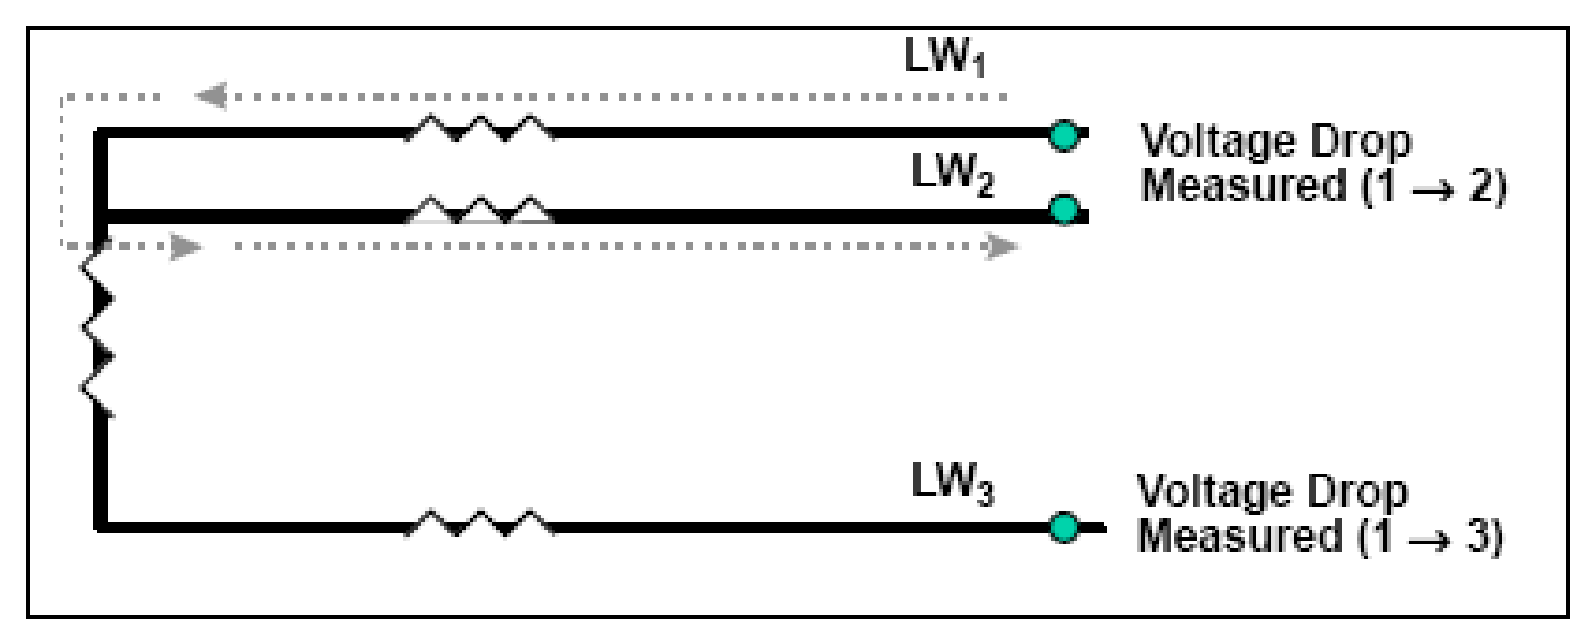 Lead wire compensation for 3 wire RTD